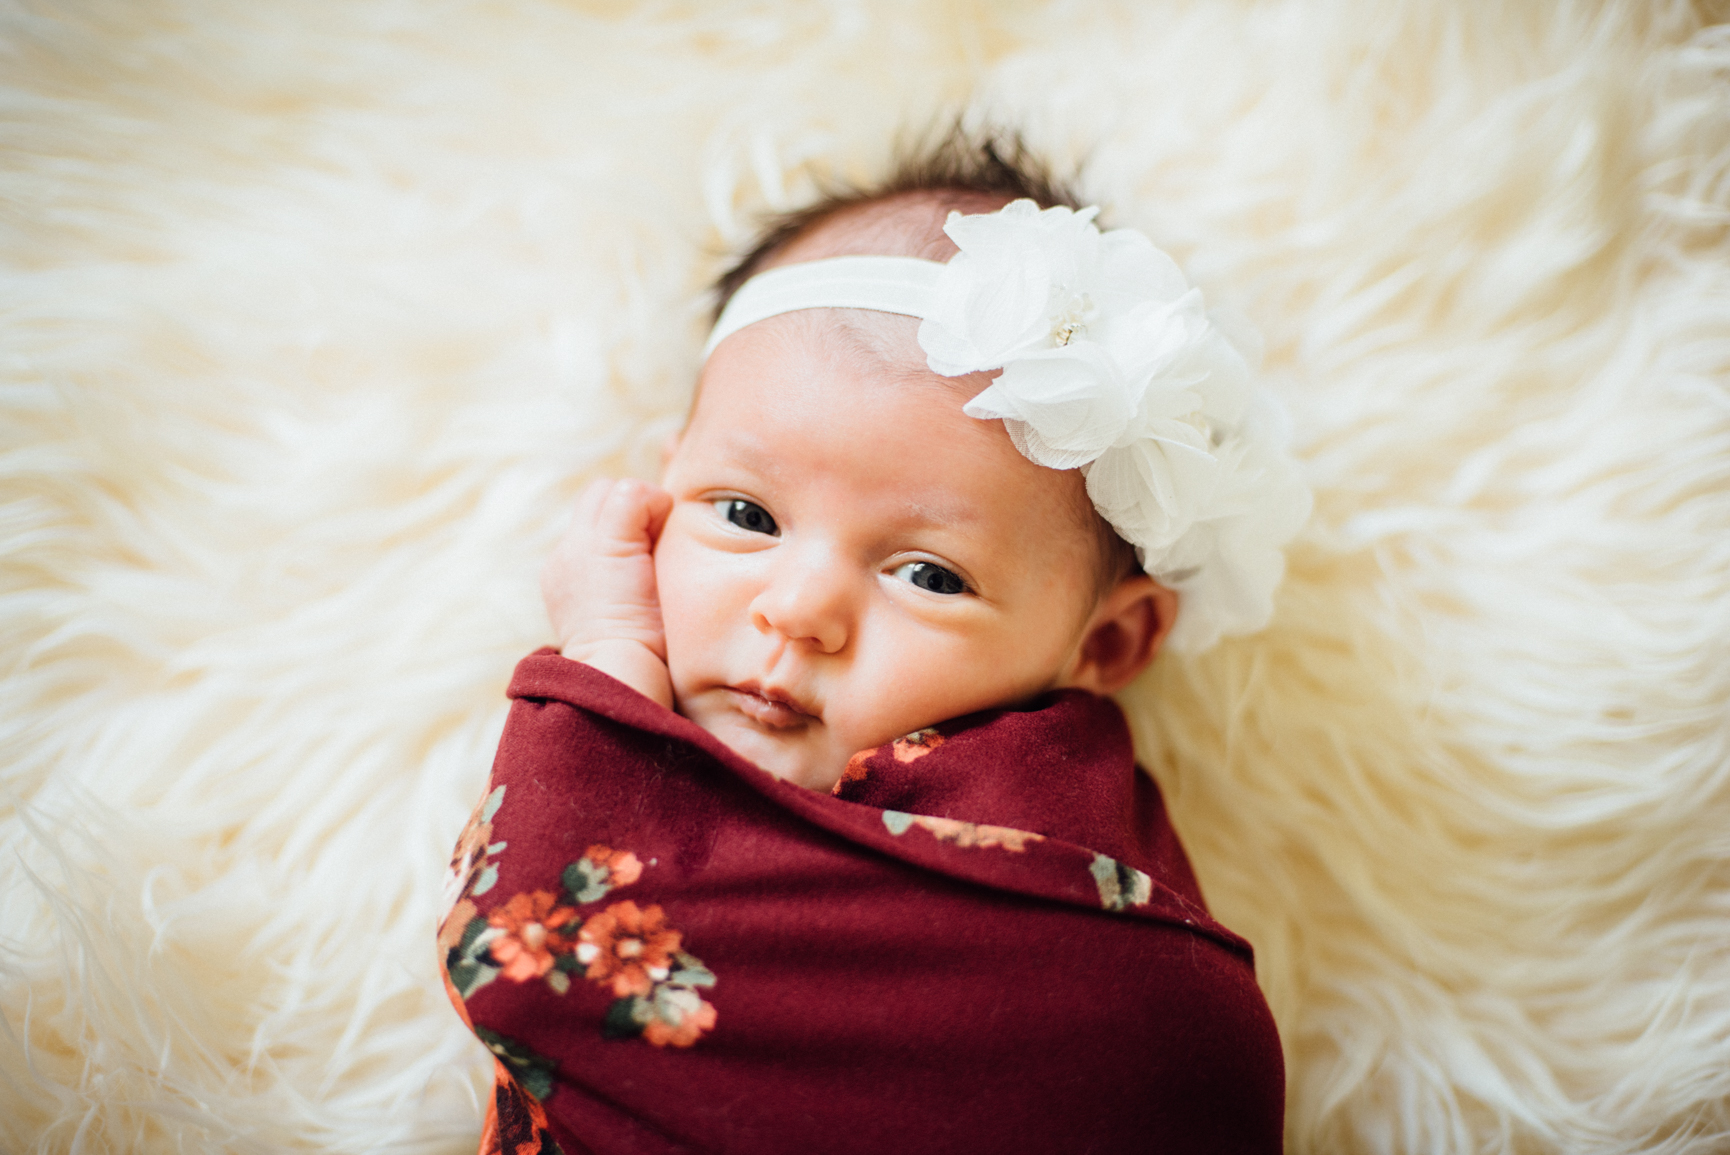 Everly Rose Newborn Photos by Roxy Hutton of CGScreative & CityGirlSearching (1 of 1).jpg